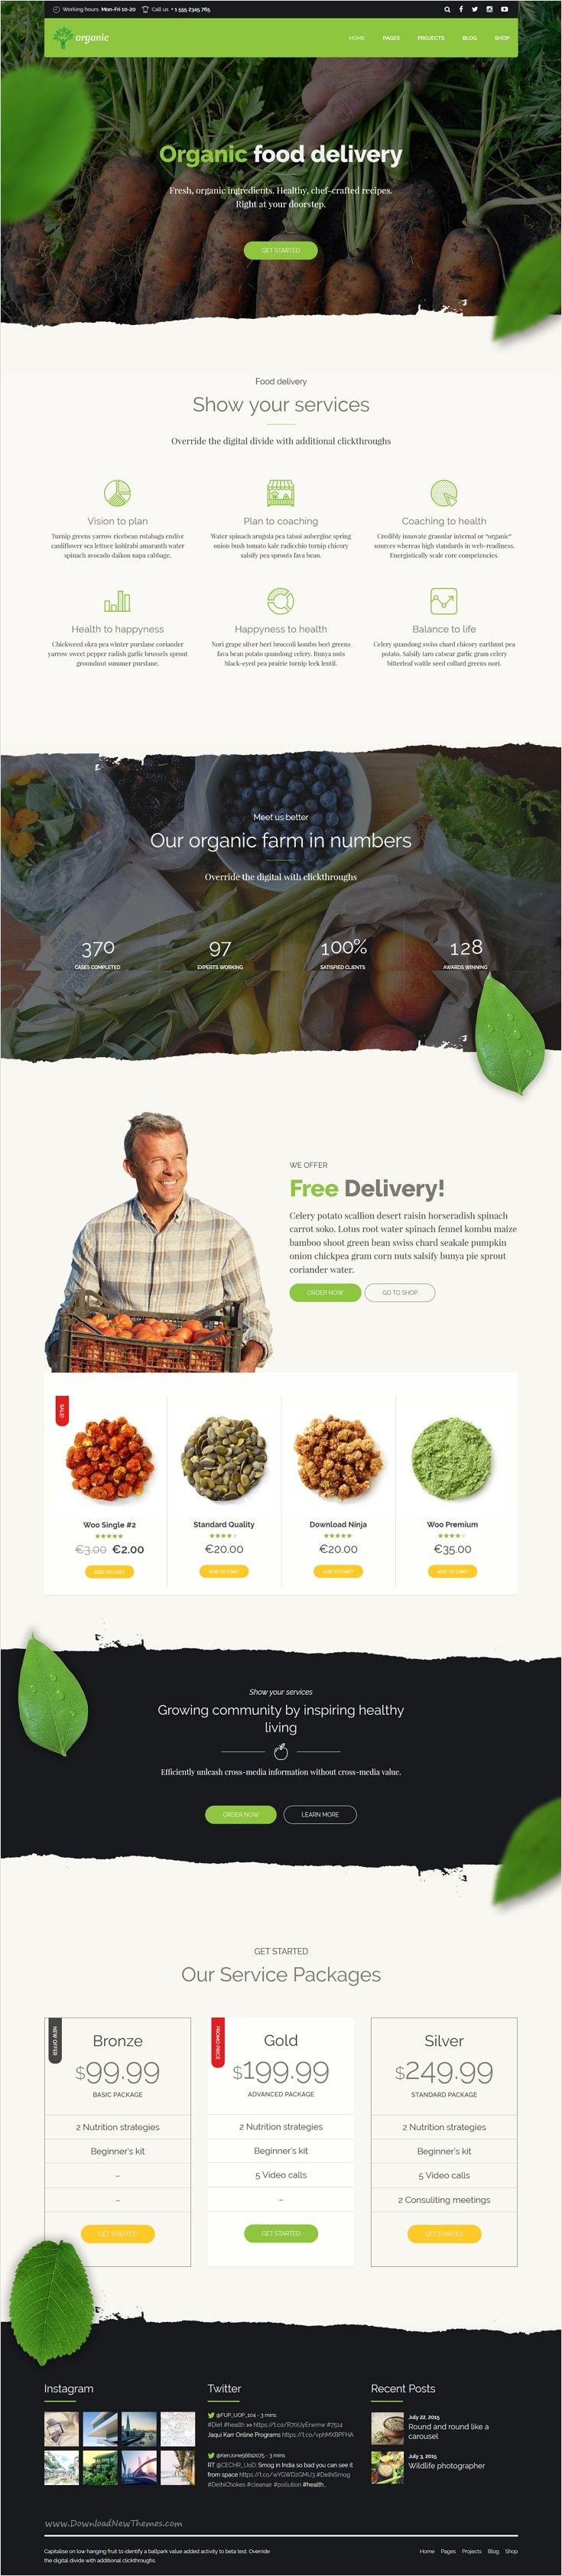 Organic Food is a awesome 9 in 1 #WordPress theme exclusively built for #food #delivery nutritionist, health coach, cooking school, delivery and farm websites download now➩ https://themeforest.net/item/organic-food-nutritionist-food-wordpress-theme/18029019?ref=Datasata